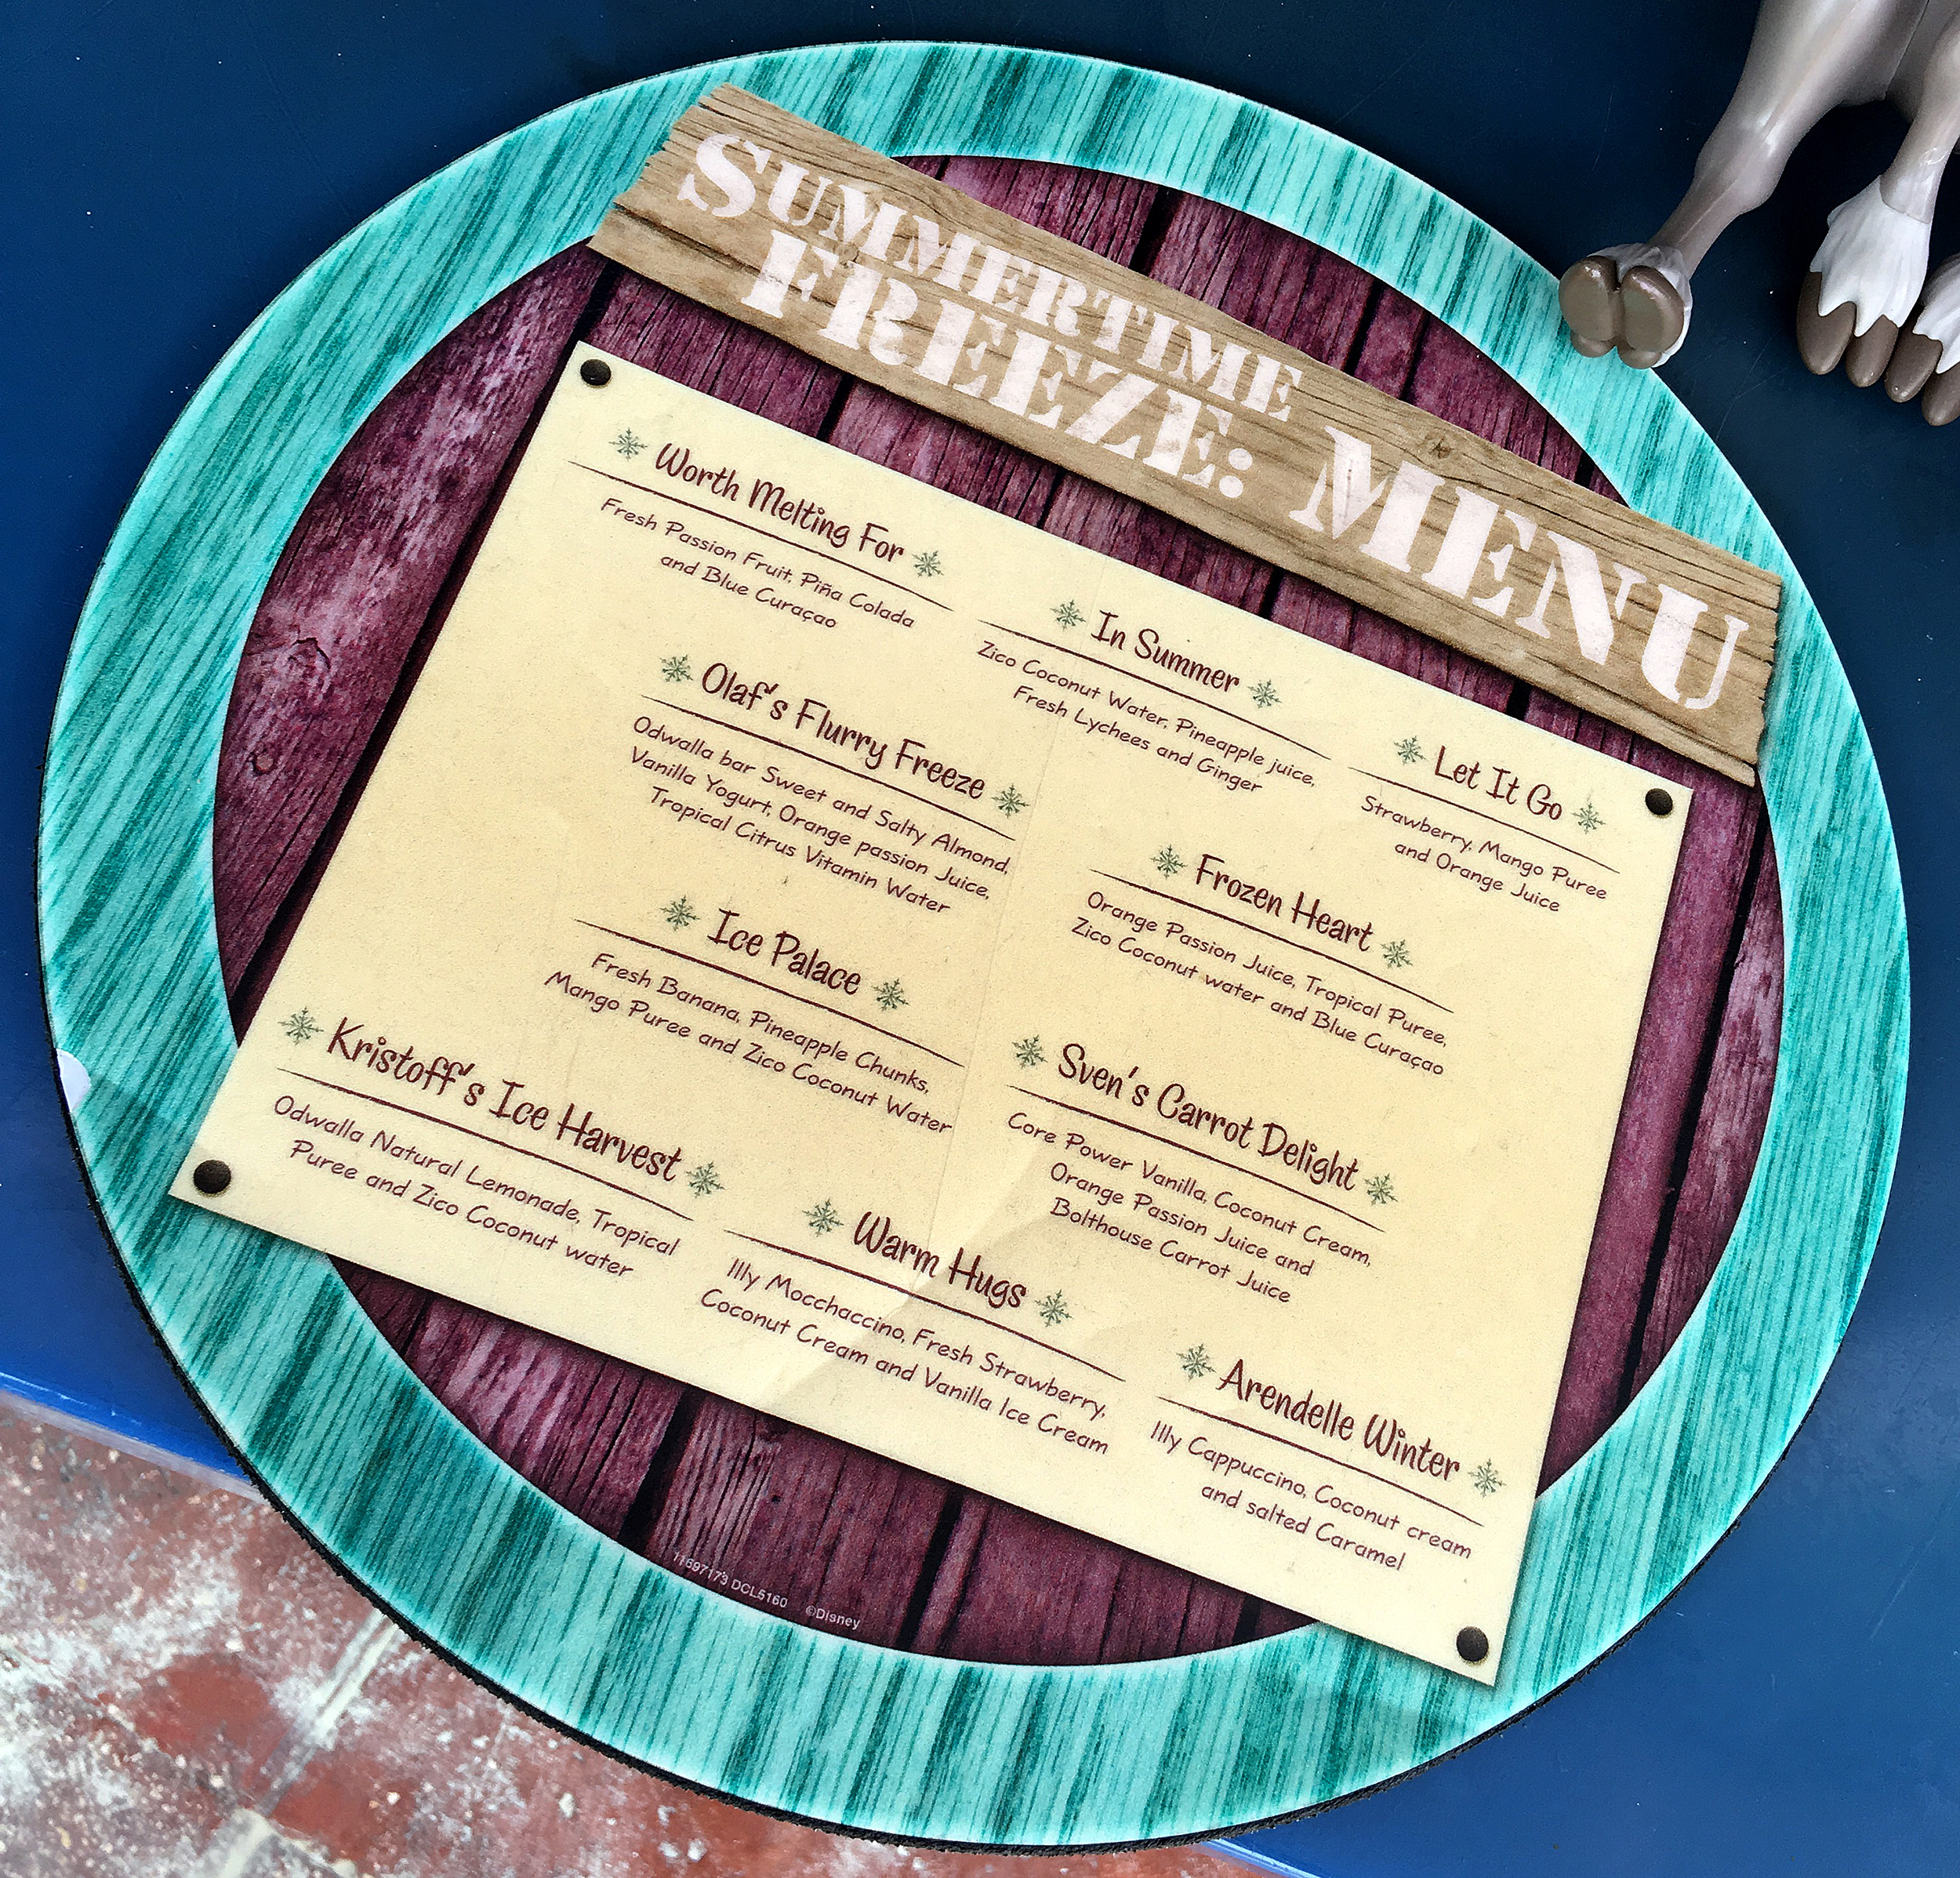 castaway cay summertime freeze menu